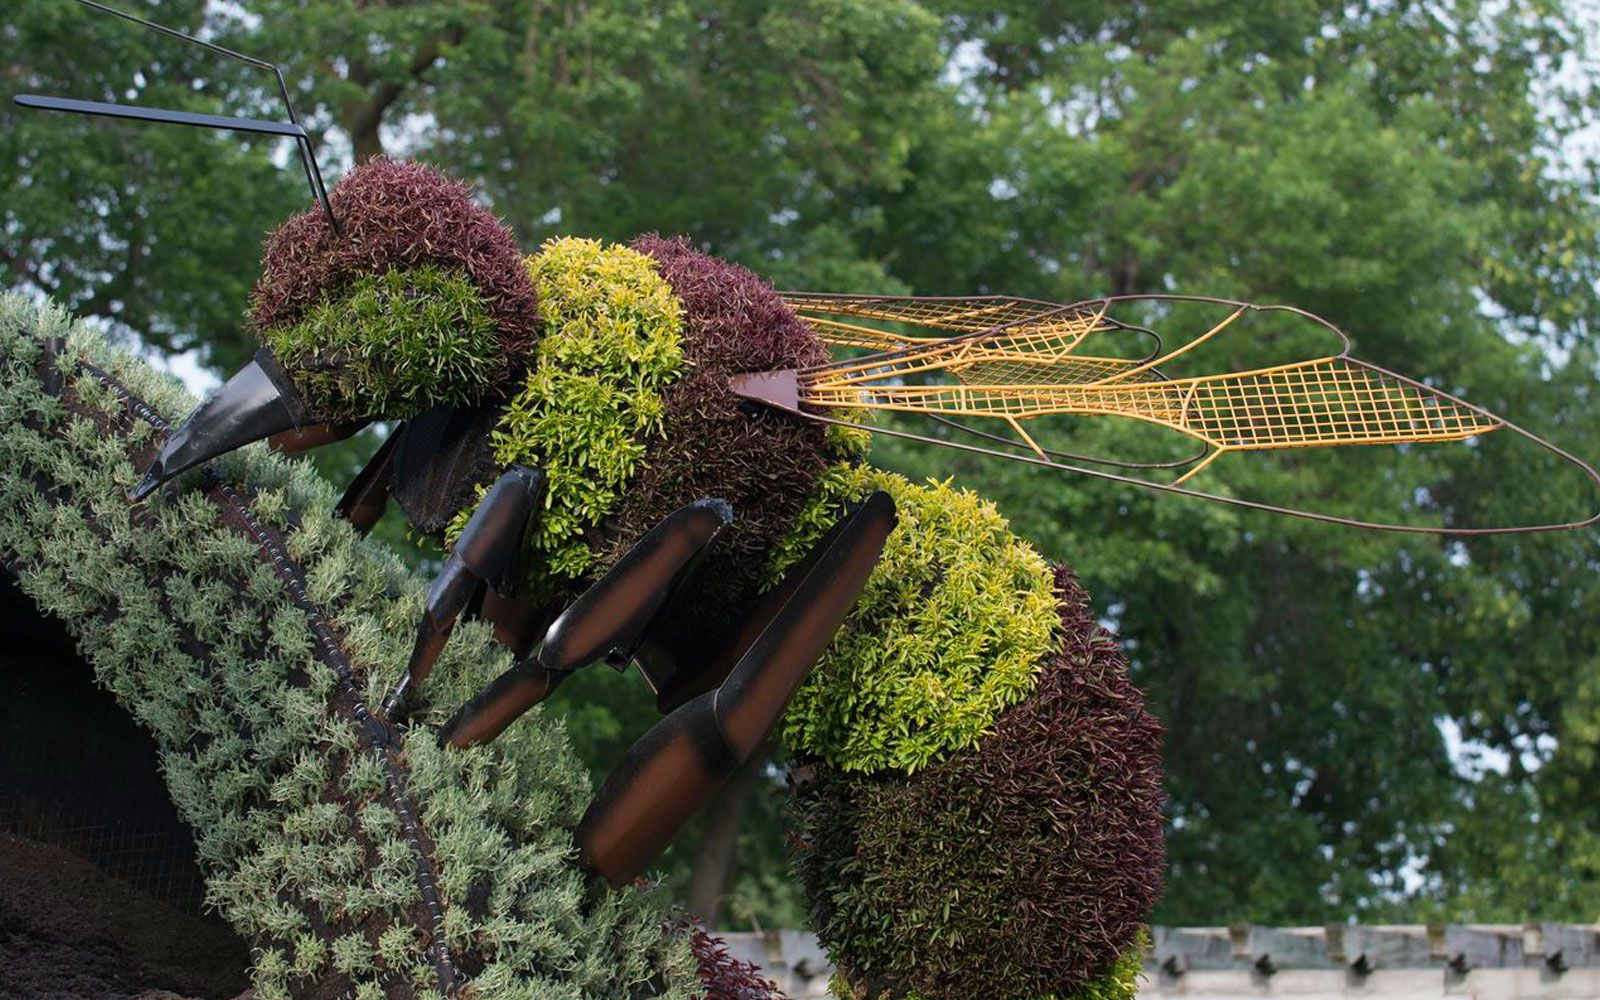 Incredible Plant Sculptures at the Montreal Botanical Garden #botanicgarden